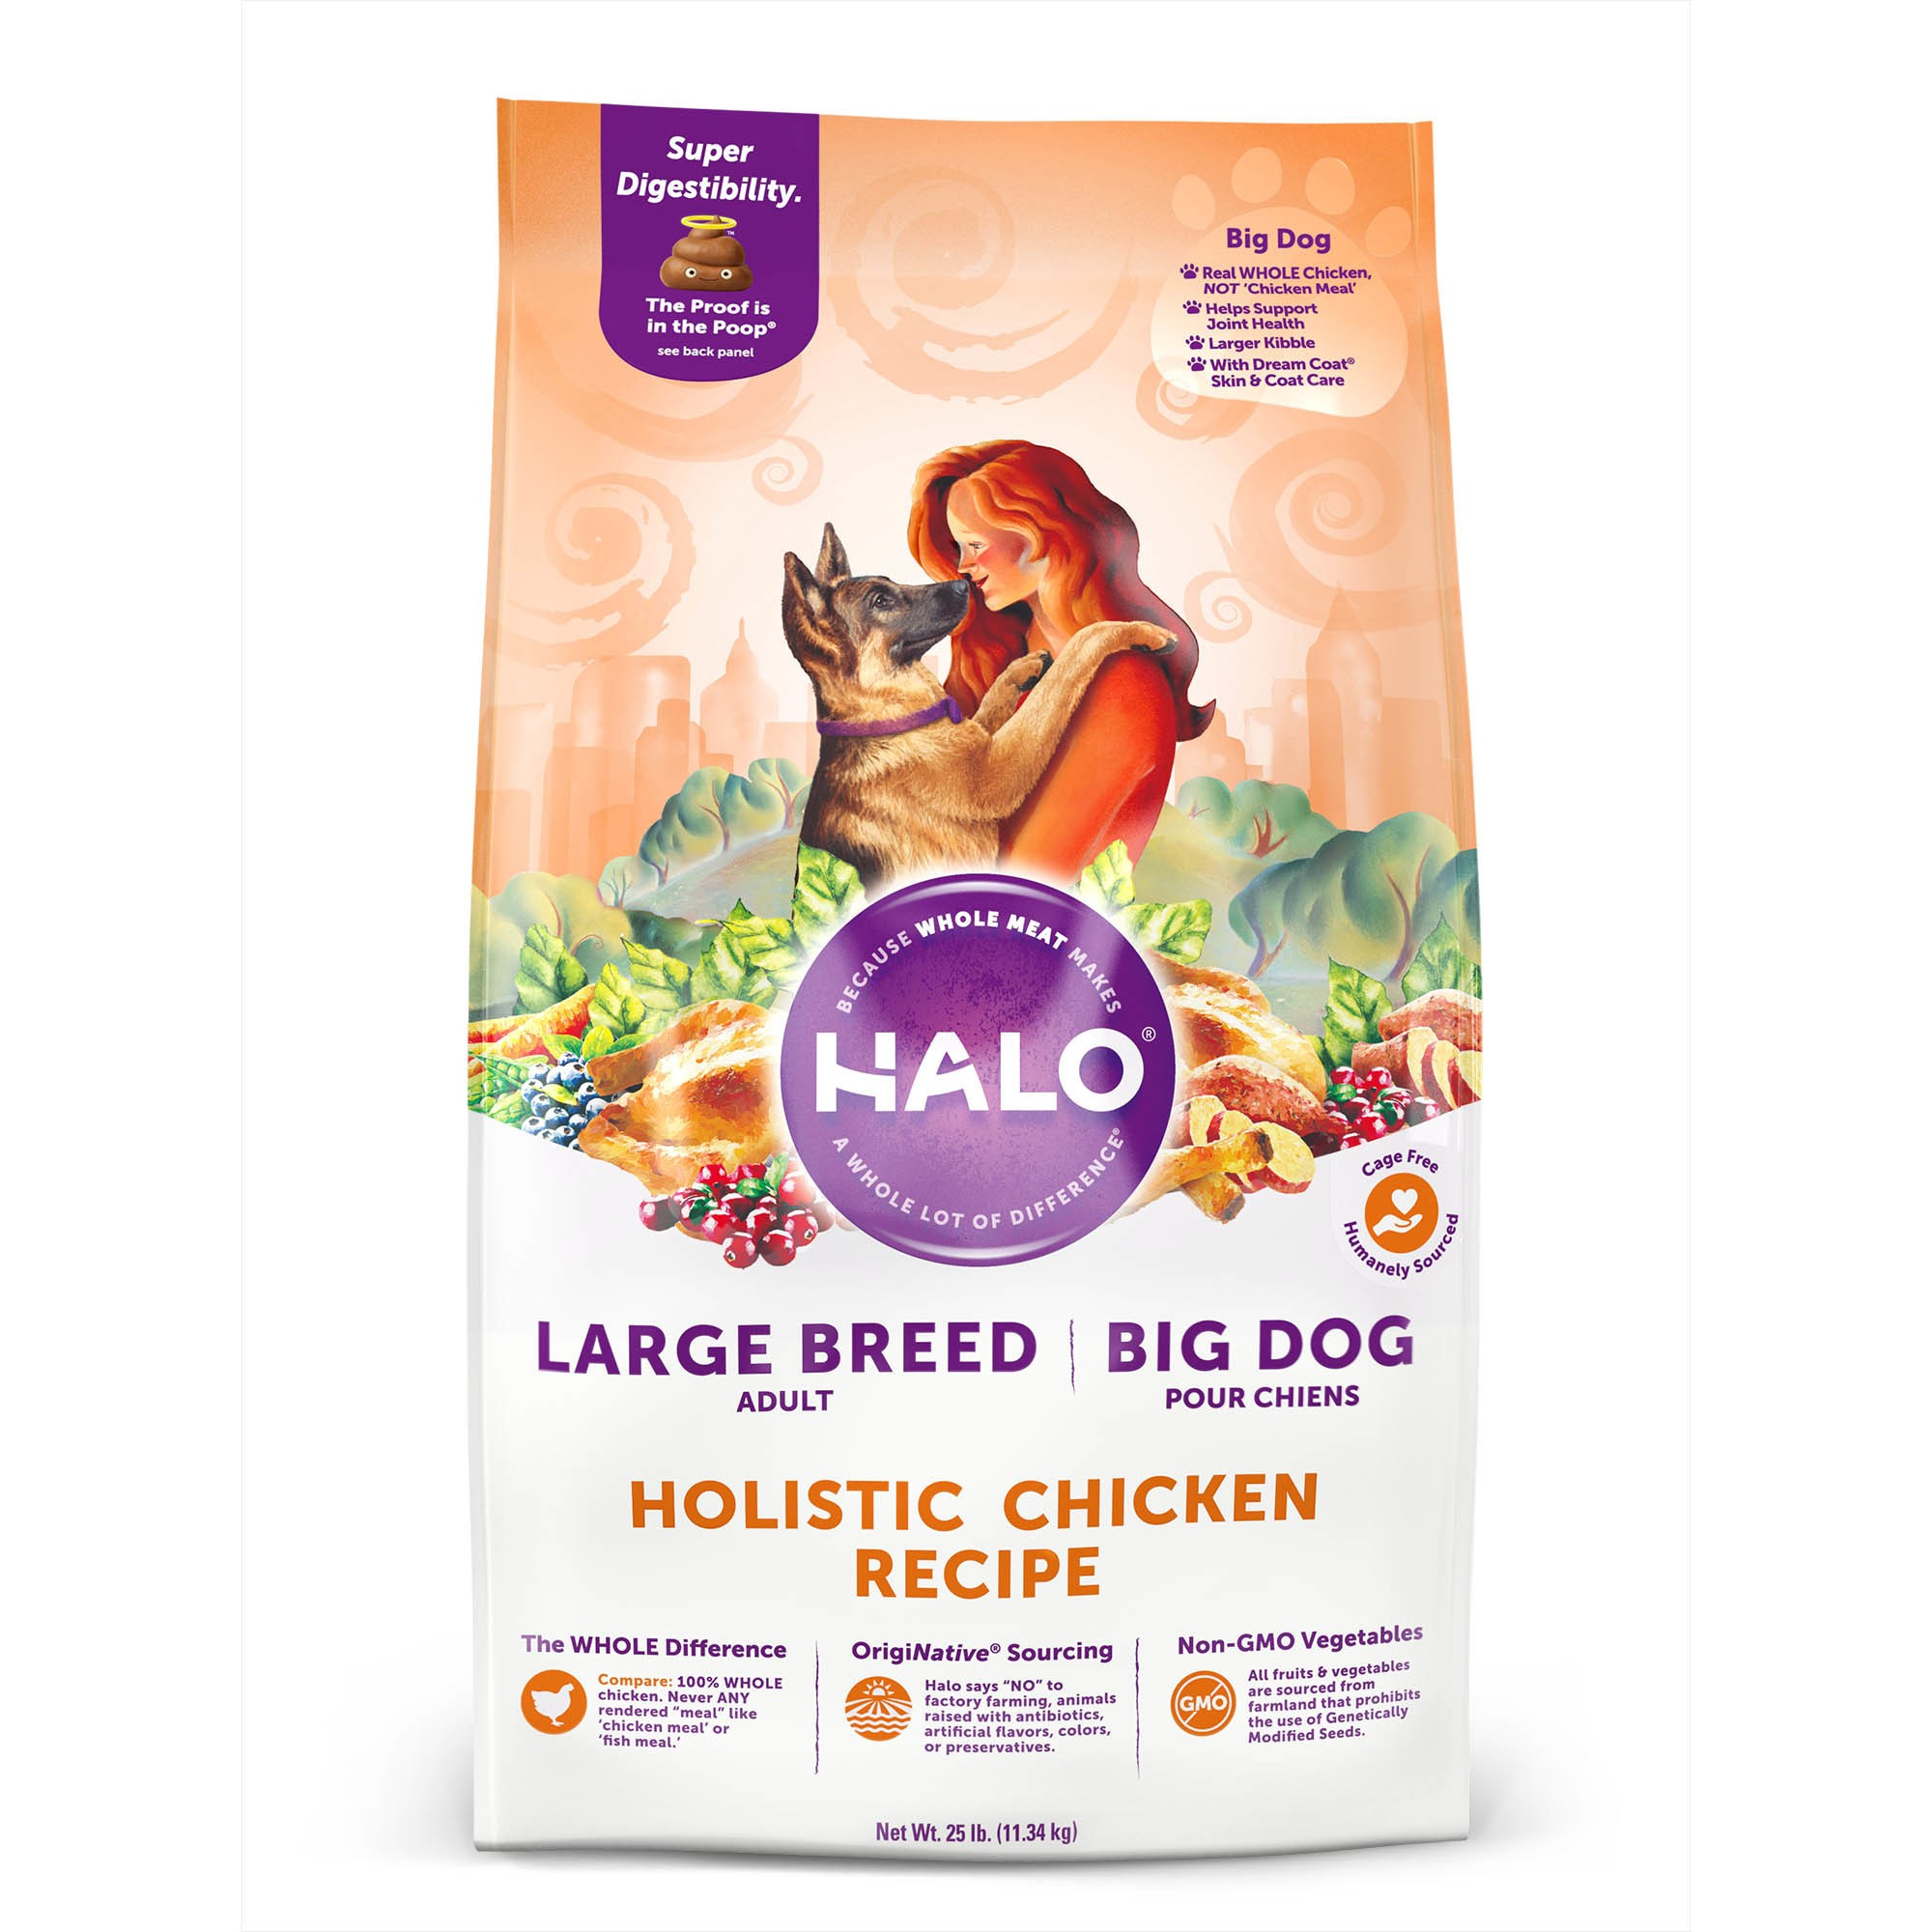 Halo Natural Dry Dog Food, Large Breed-Big Dog Chicken Recipe, 25Lb. Bag